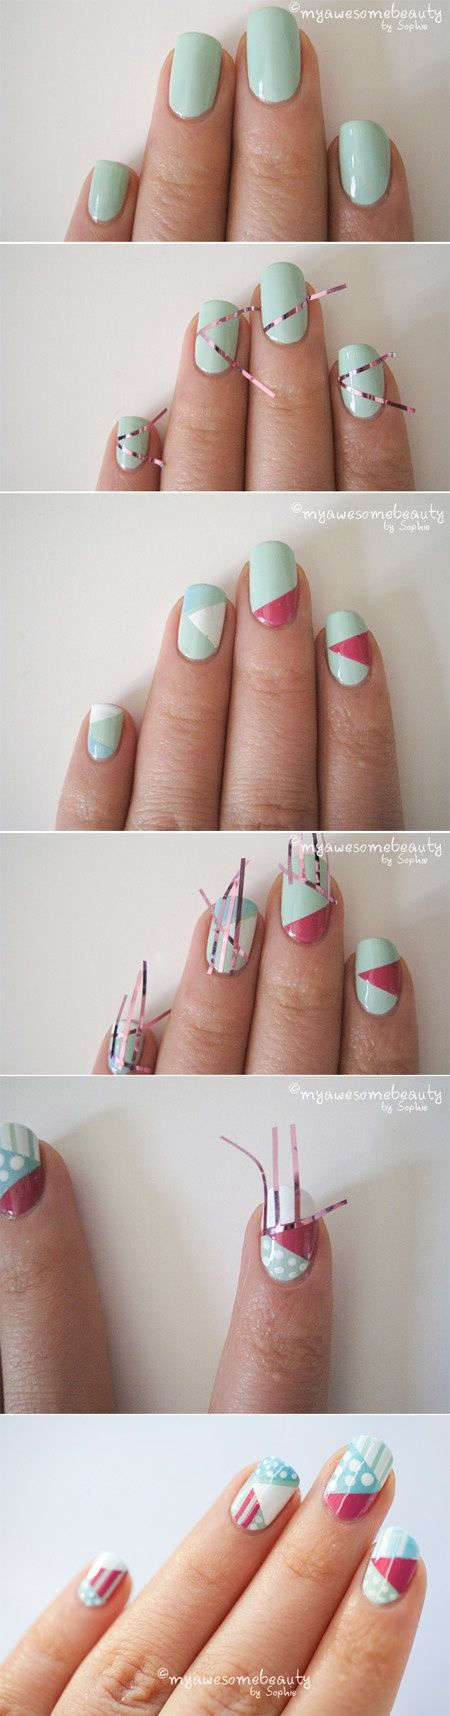 nail art design step by step 2 Nail Art Design Step by Step